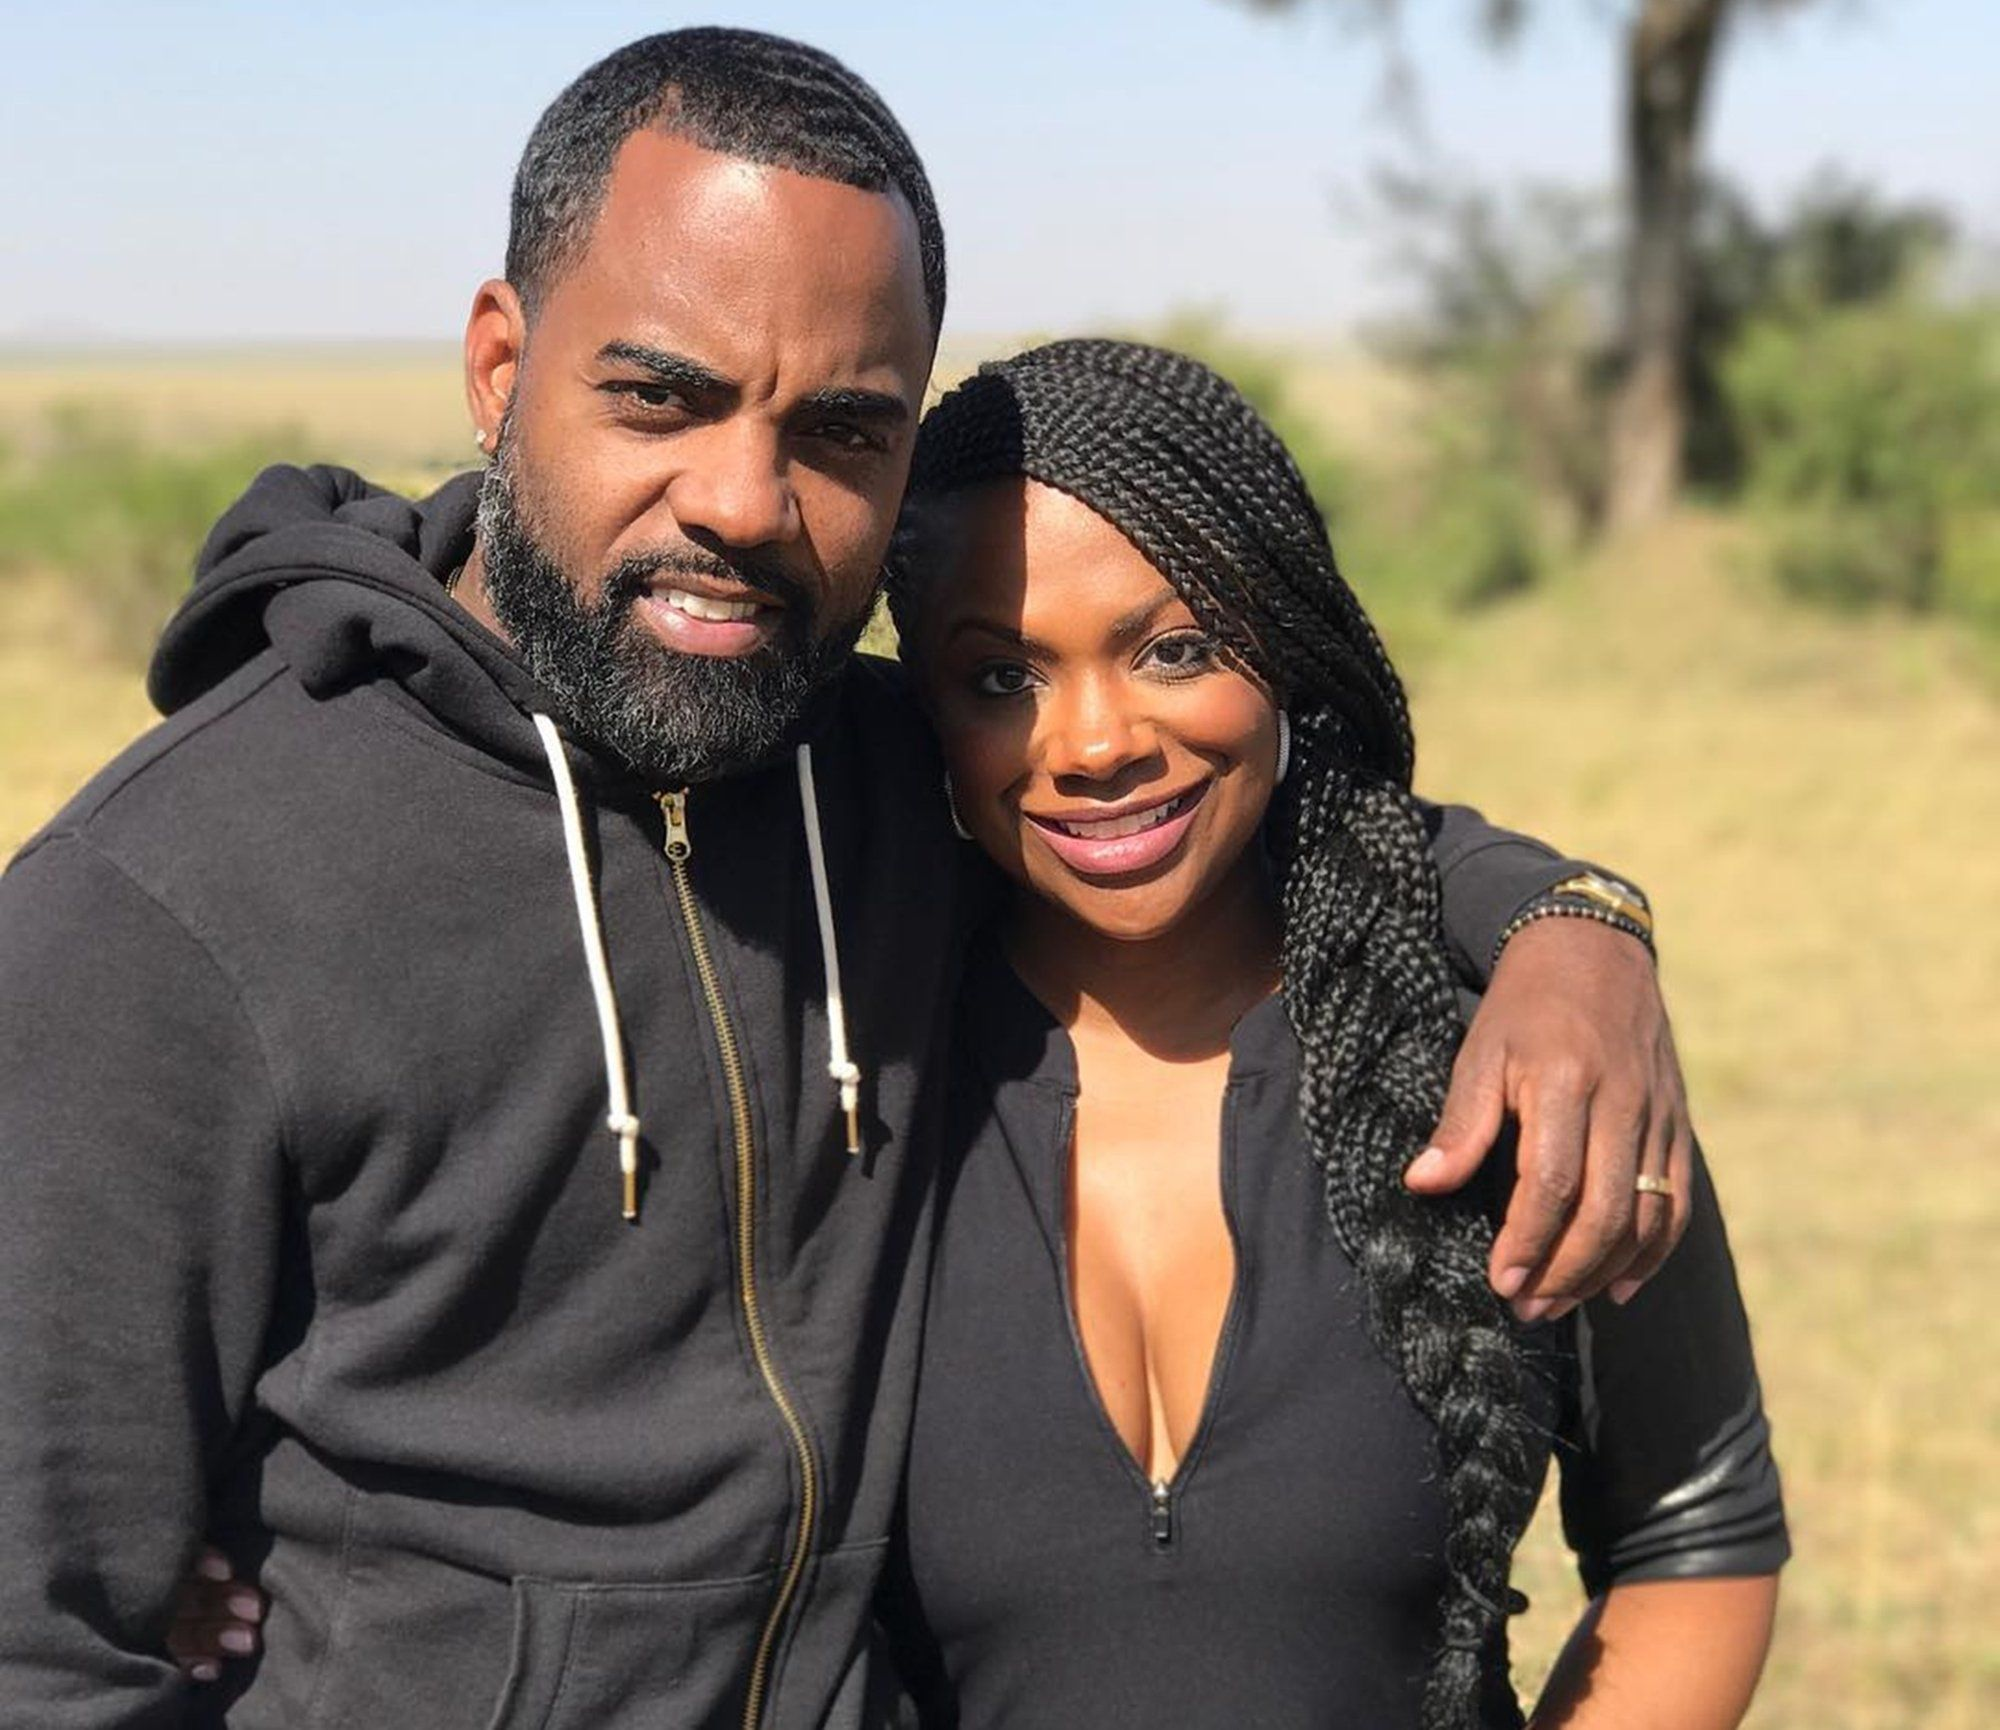 Kandi Burruss And Todd Tucker Shared An Important Achievement